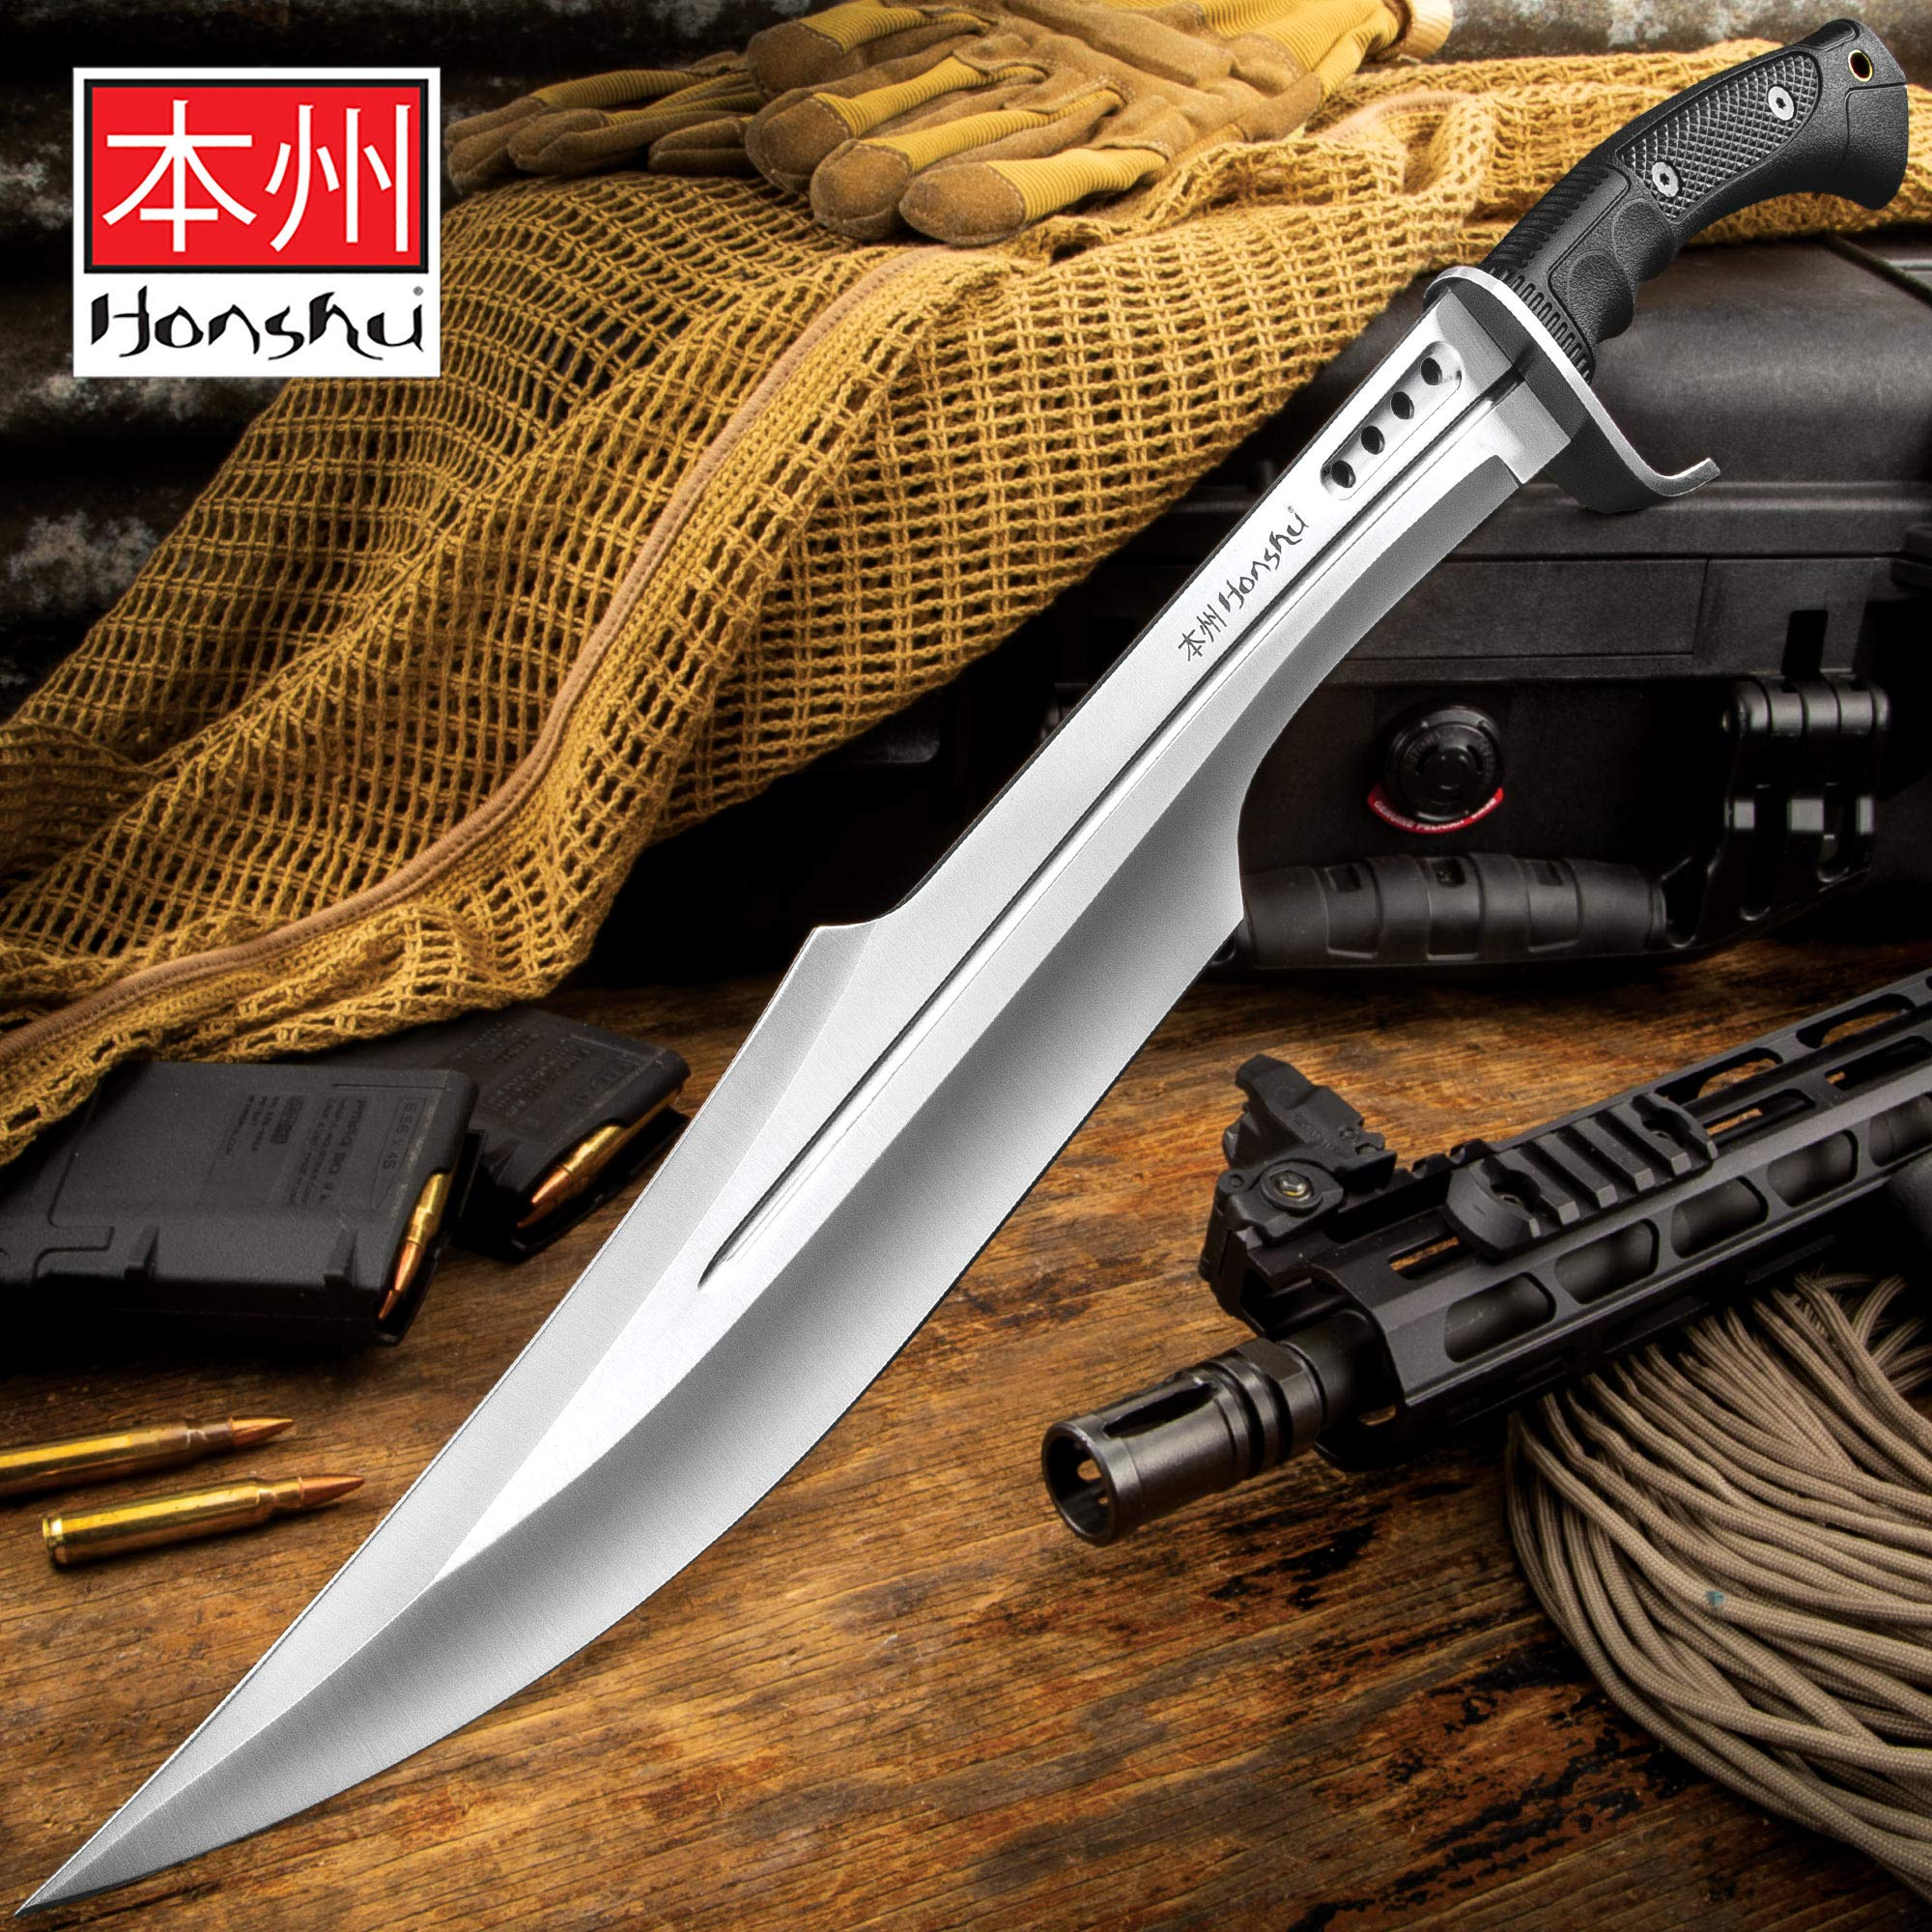 Honshu Spartan Sword and Sheath - 7Cr13 Stainless Steel Blade, Grippy TPR Handle, Stainless Steel Guard - Length 23'' by Honshu